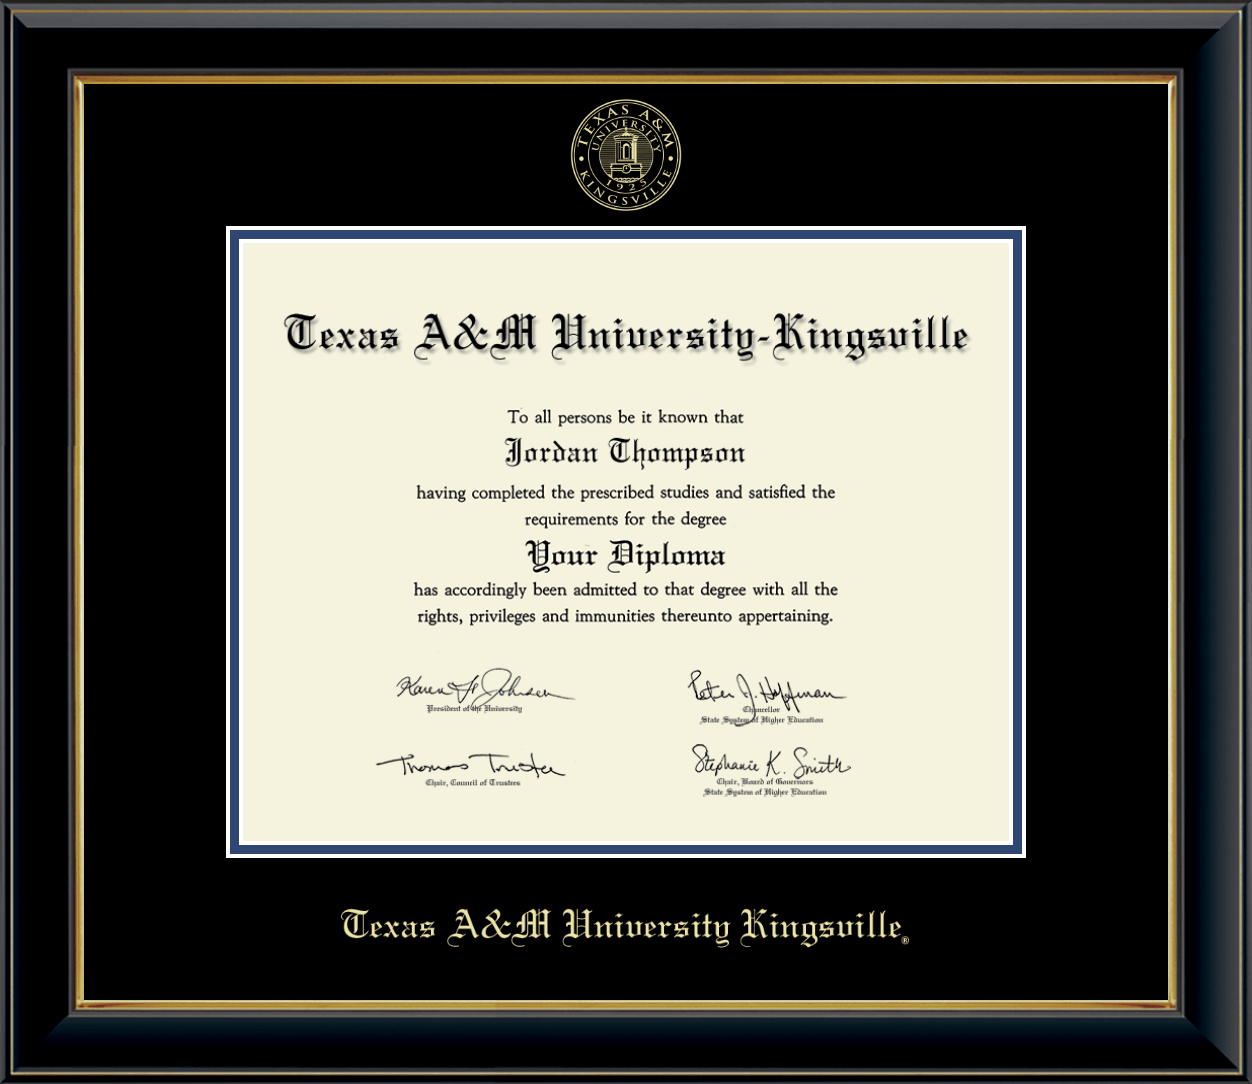 Texas A M University Kingsville Gold Embossed Diploma Frame In Onyx Gold Item 235951